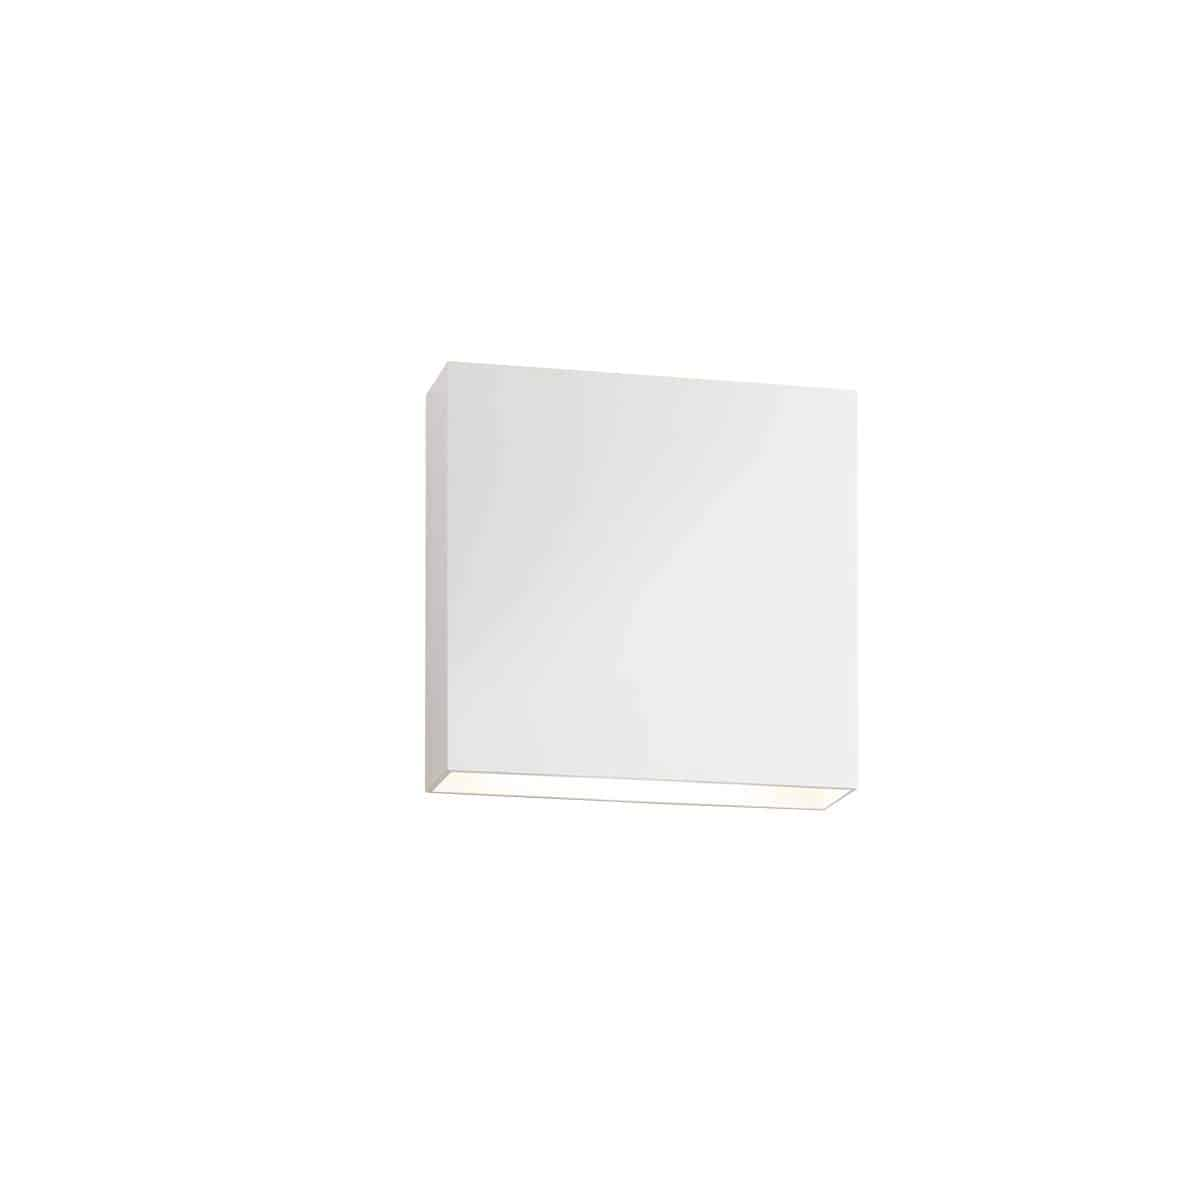 COMPACT W3 UP/DOWN WHITE